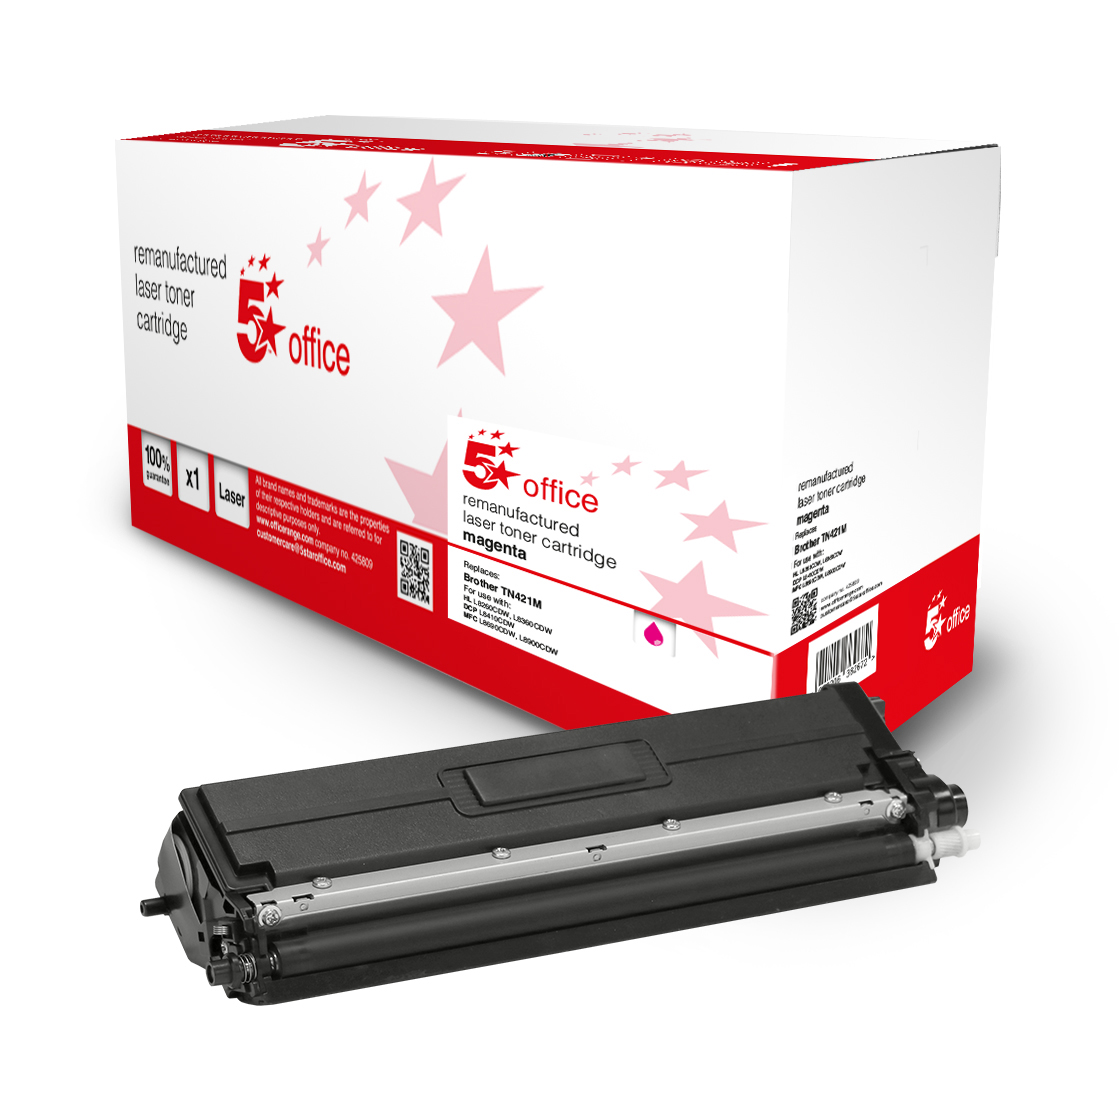 Laser Toner Cartridges 5 Star Office Remanufactured Toner Cartridge Page Life Magenta 1800pp Brother TN421M Alternative